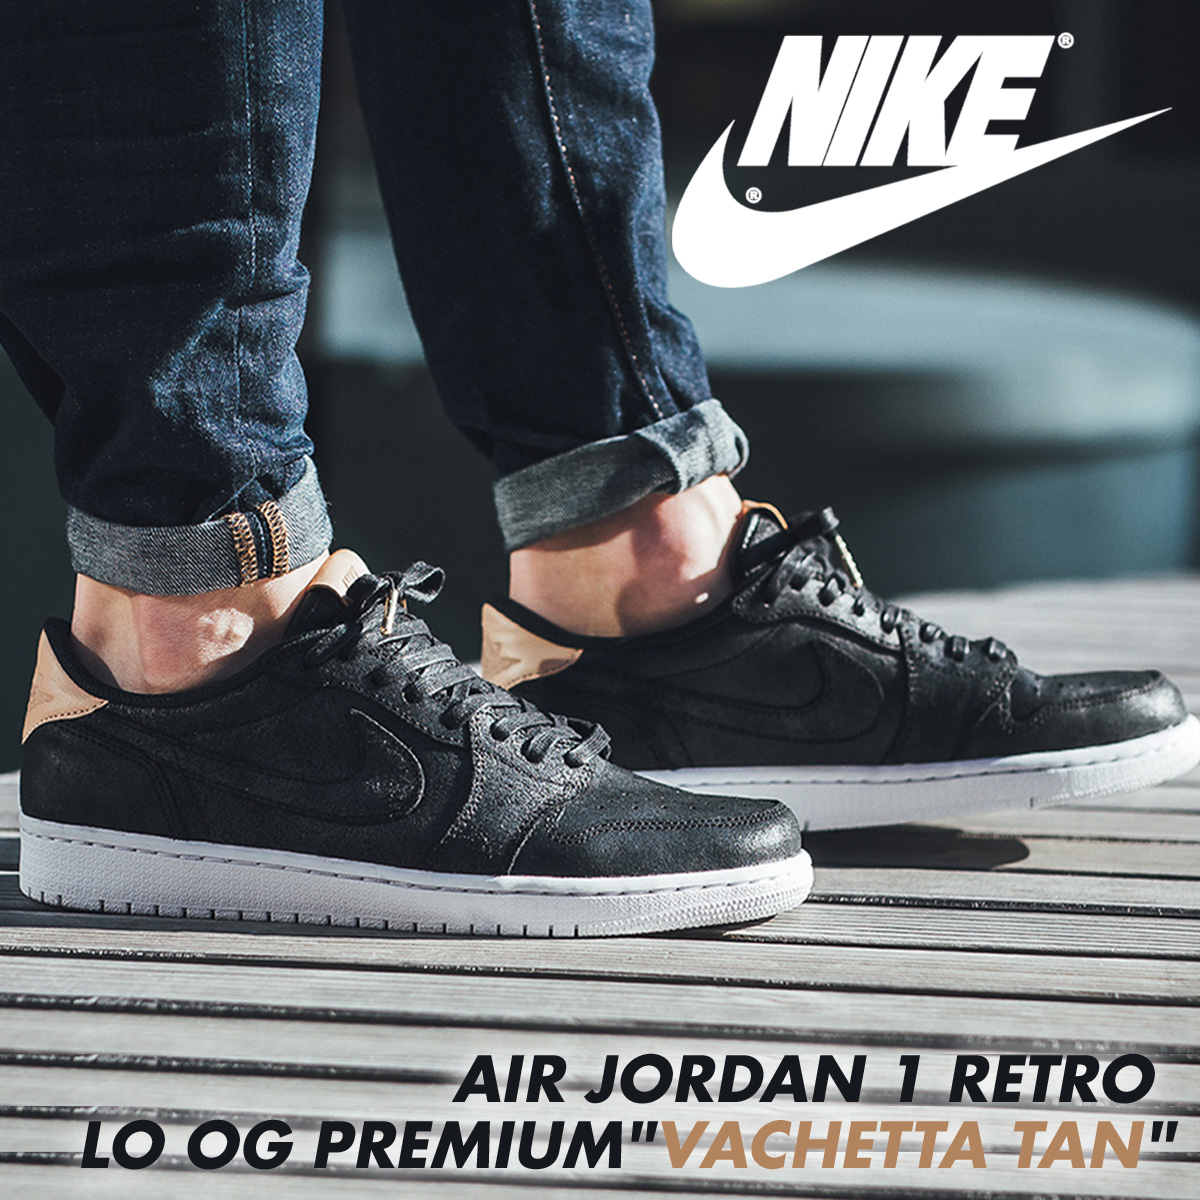 Reentry Og Premium Air Men's Sneakers Low Nike Shoes 905 1 Nostalgic 010 Jordan Retro 136 Black725 Load rshQdtC